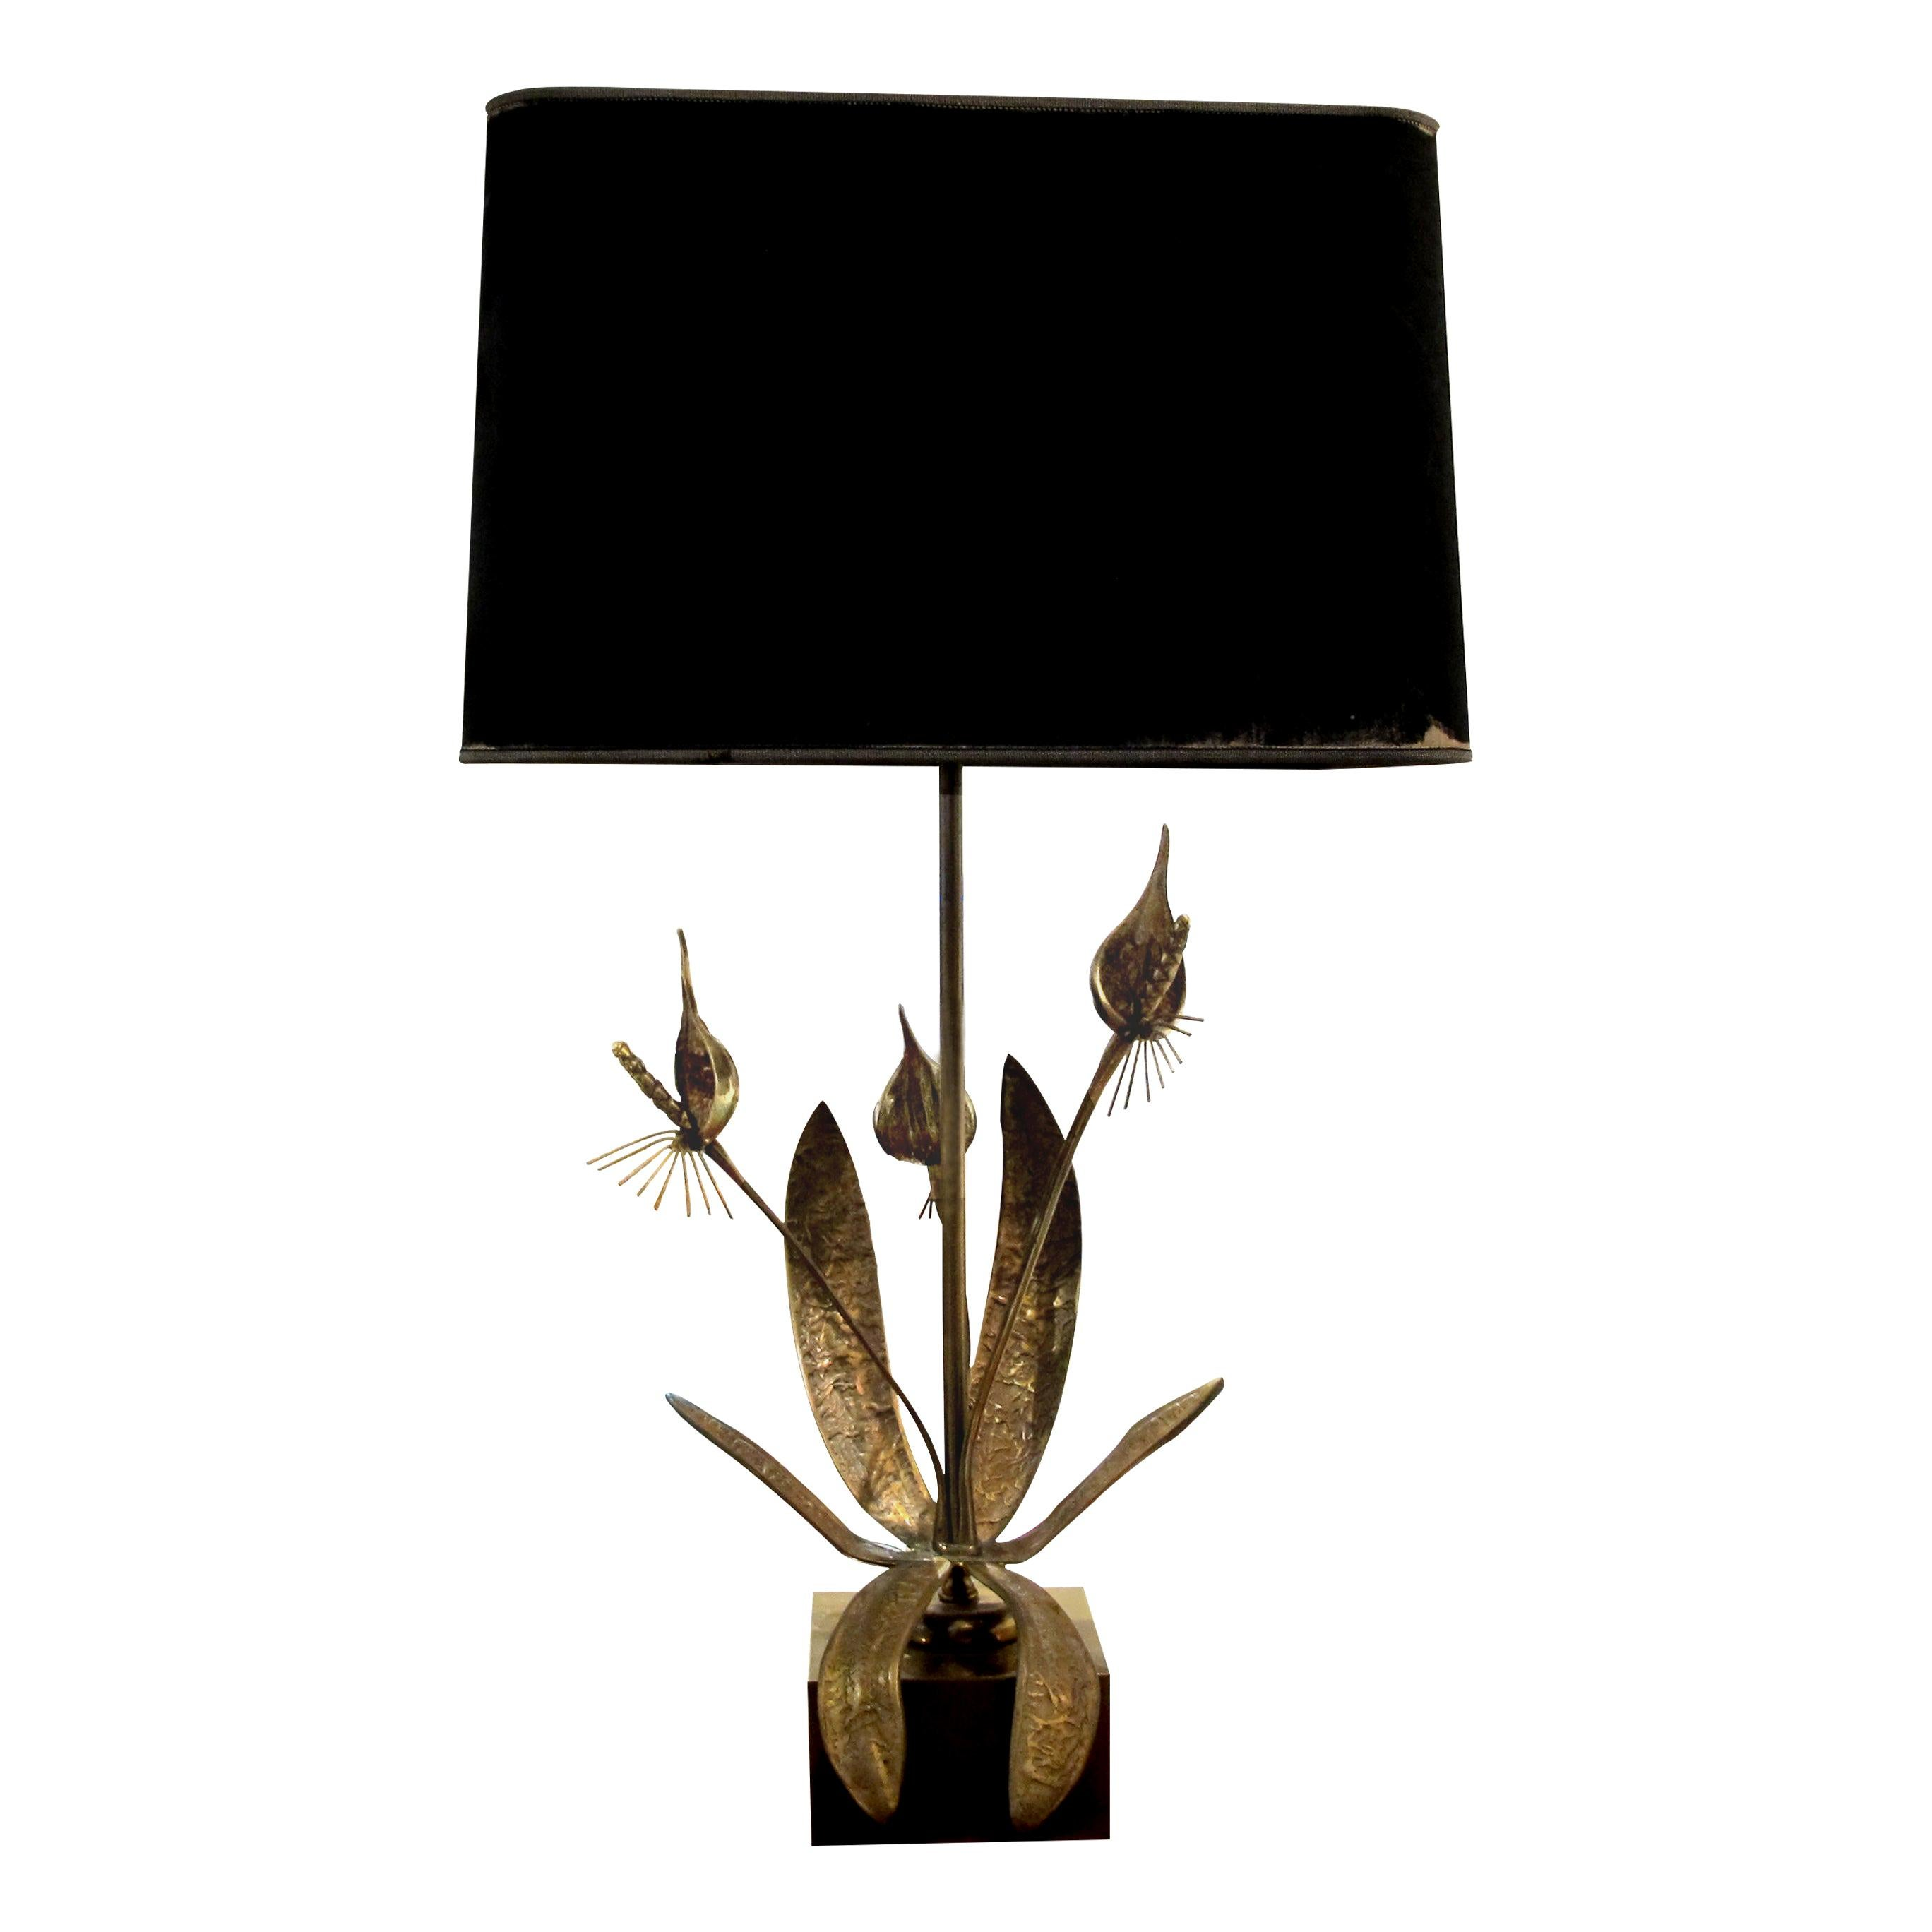 1970s Belgian Solid Bronze Floral Table Lamp Sculpture Willy Daro Style